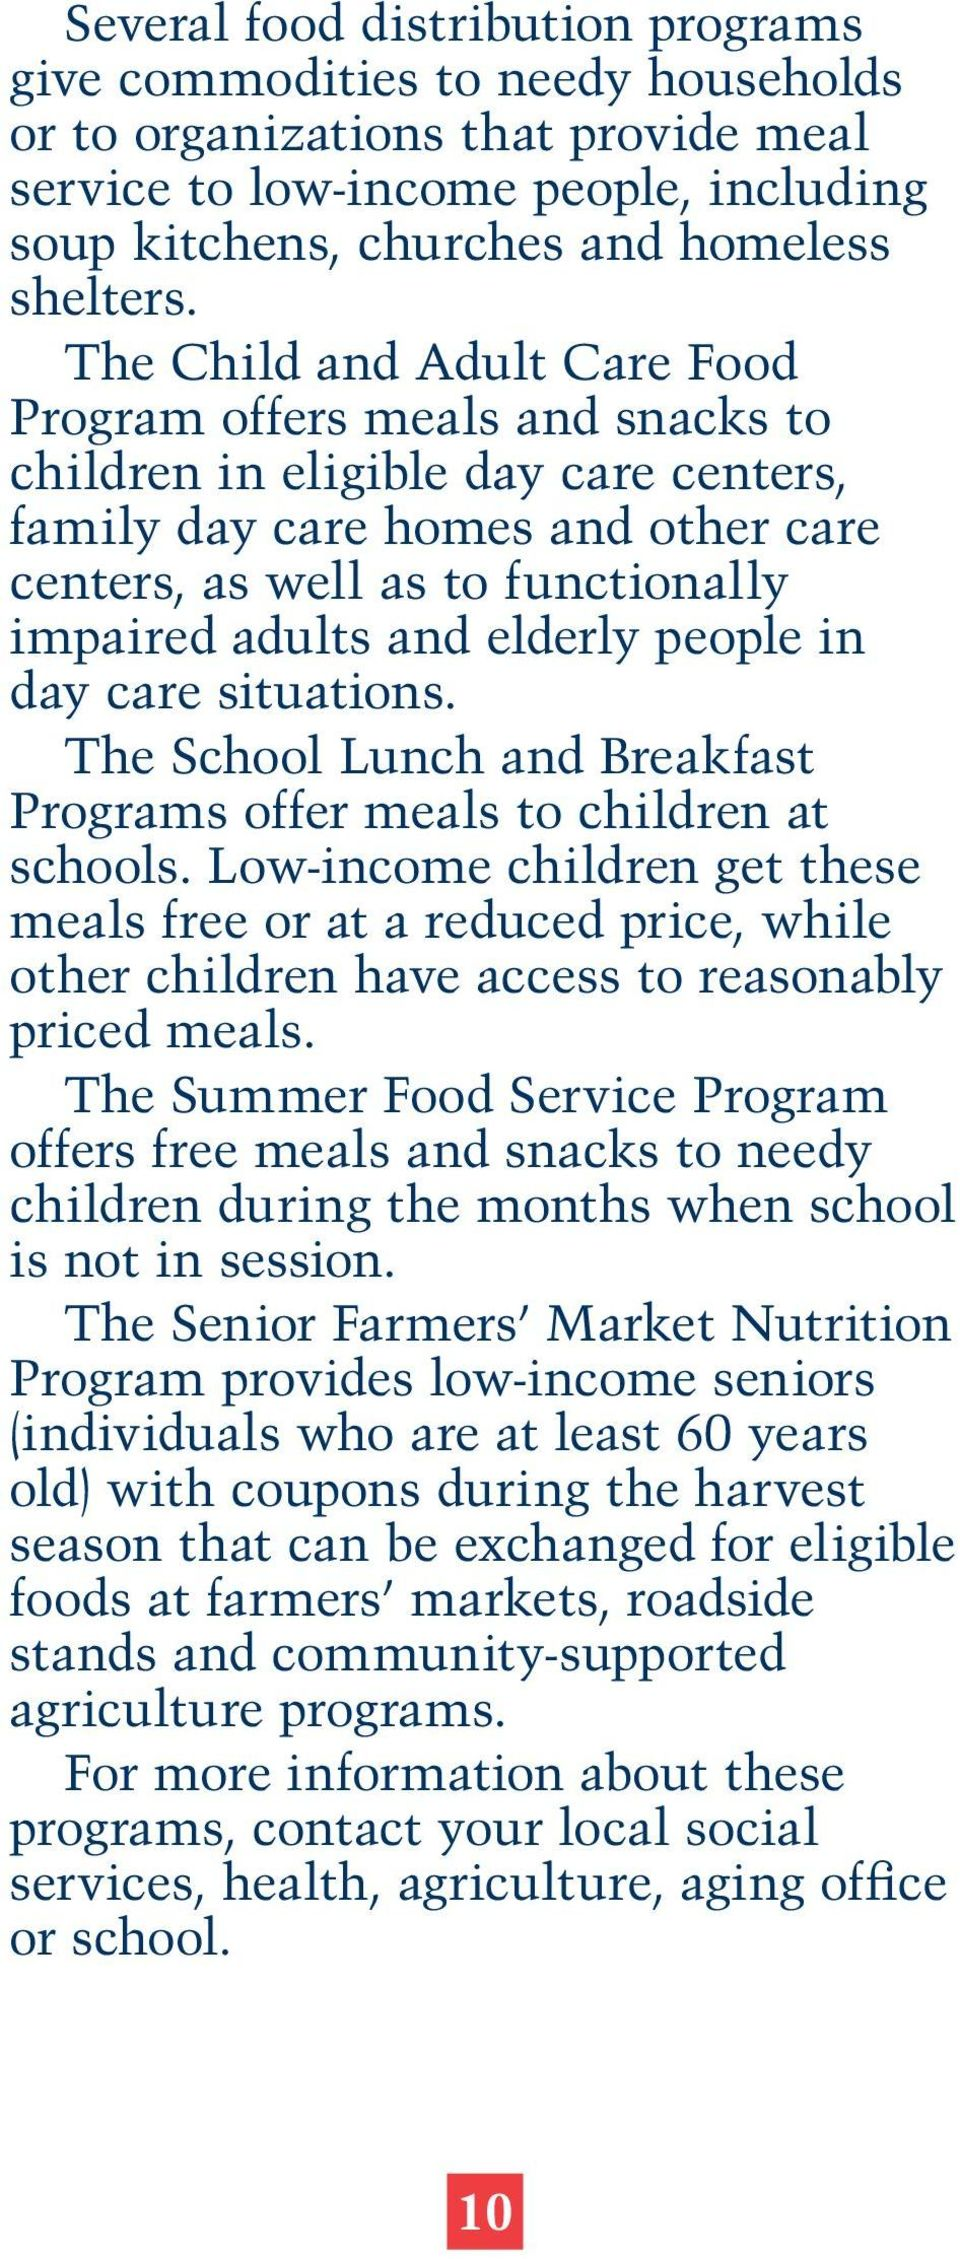 elderly people in day care situations. The School Lunch and Breakfast Programs offer meals to children at schools.